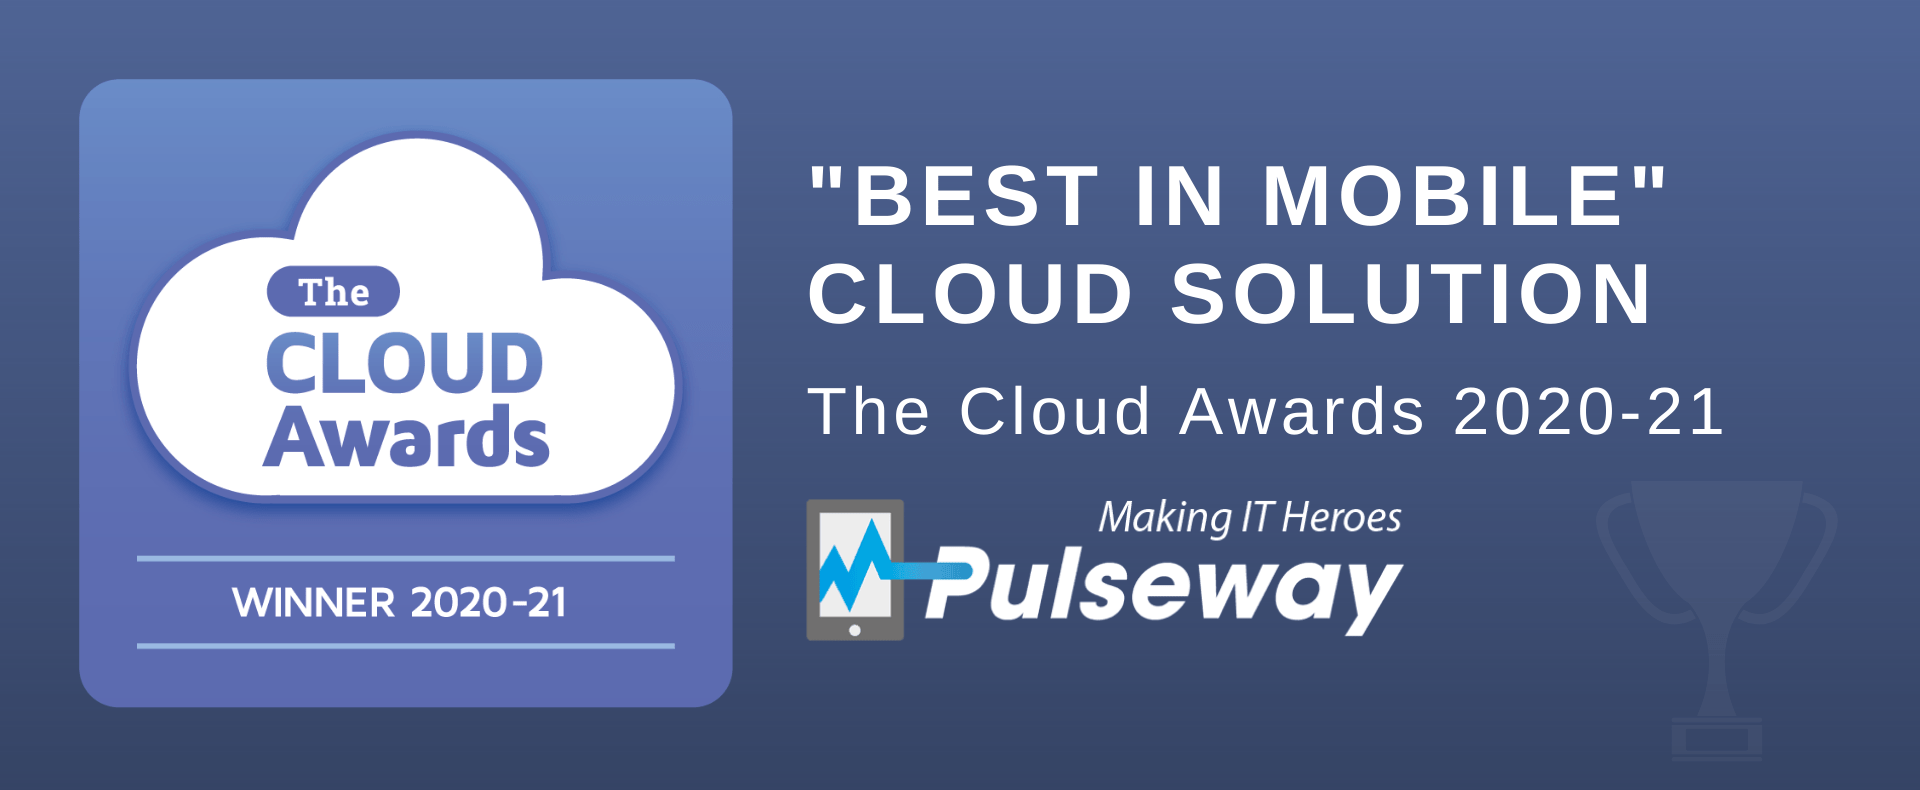 Pulseway Wins the Best In Mobile Cloud Solution at the Cloud Awards